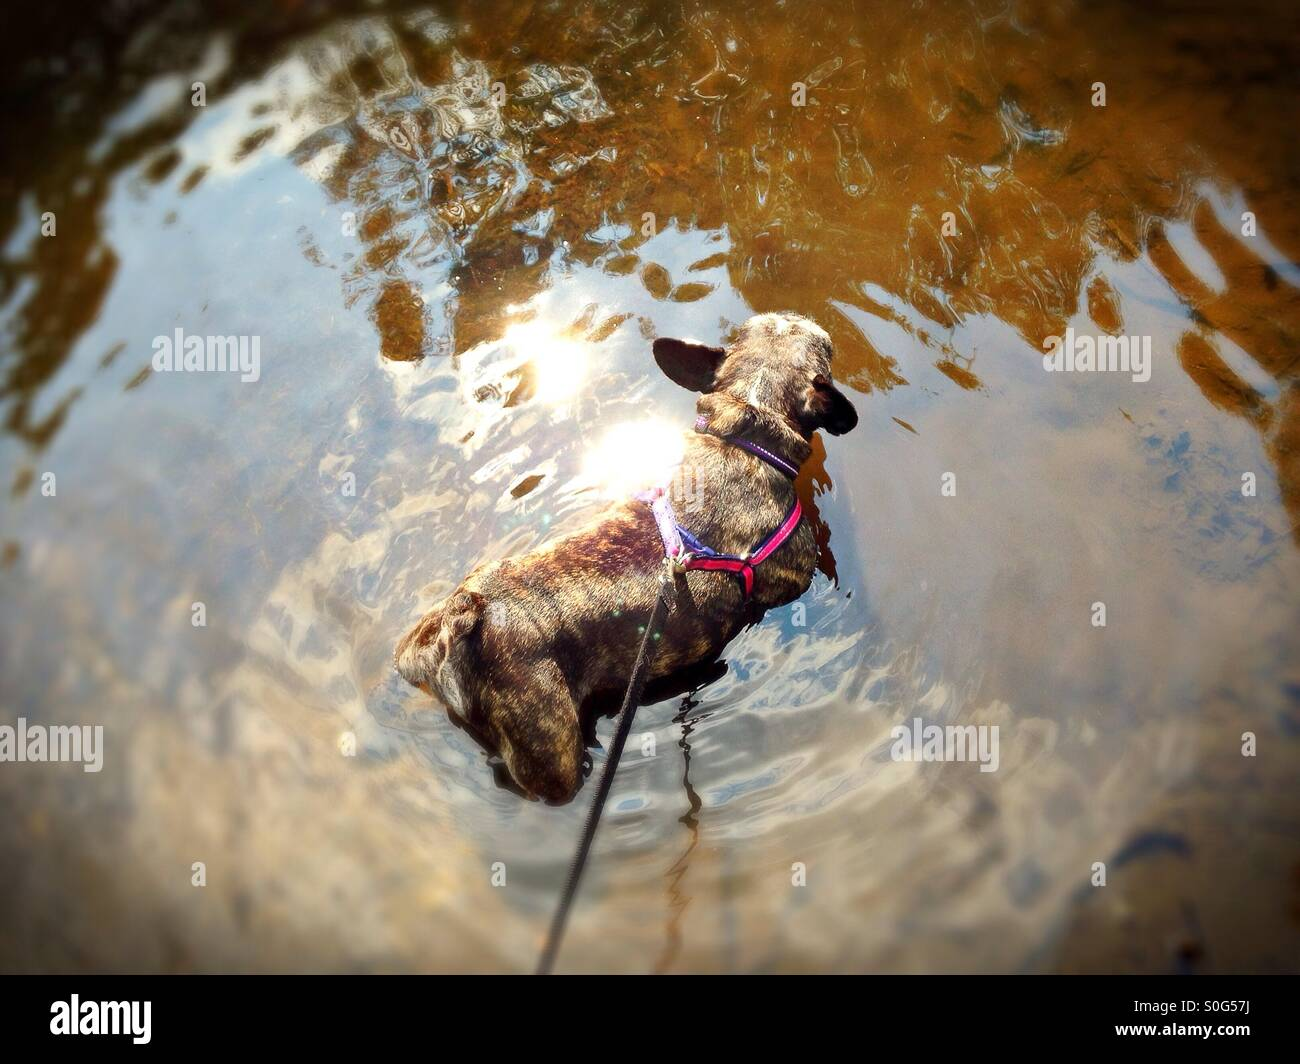 A dog standing in water. - Stock Image